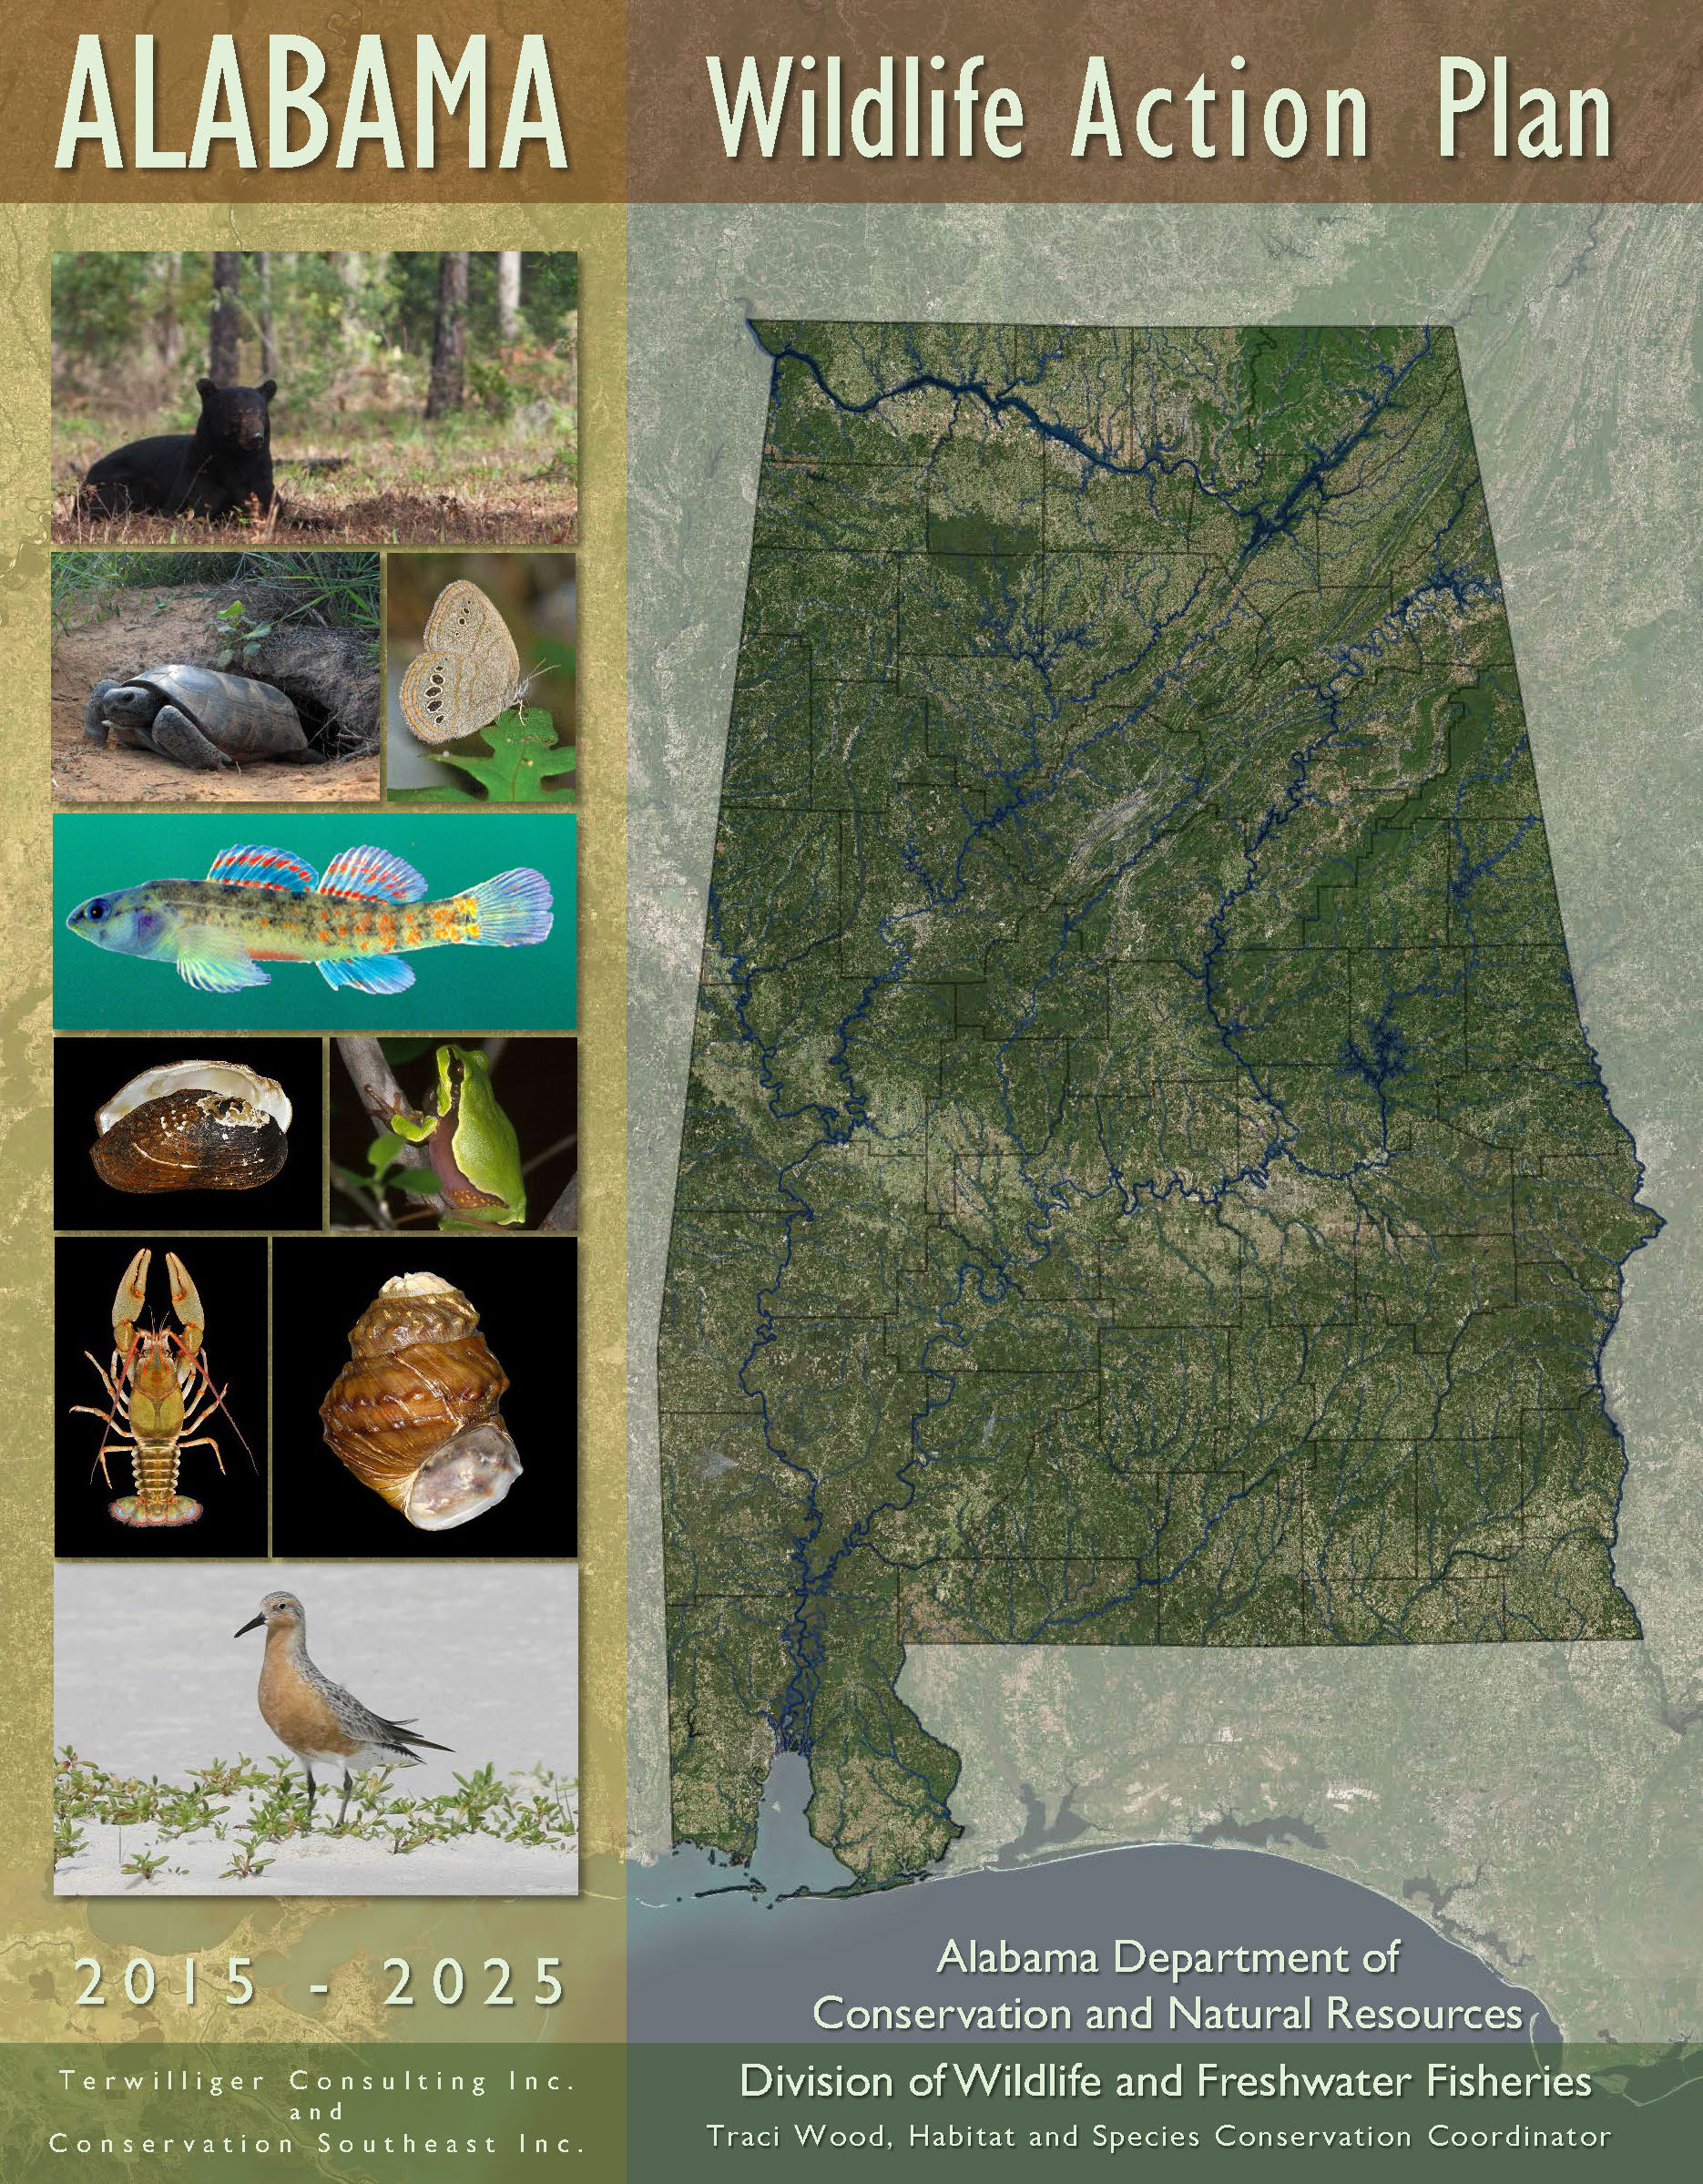 In 2014 and 2015 Conservation Southeast worked with  ADCNR ,  Terwilliger Consulting , and partners to develop Alabama's State Wildlife Action Plan for 2015-25. The entire SWAP (July 2015 draft) is available  here .